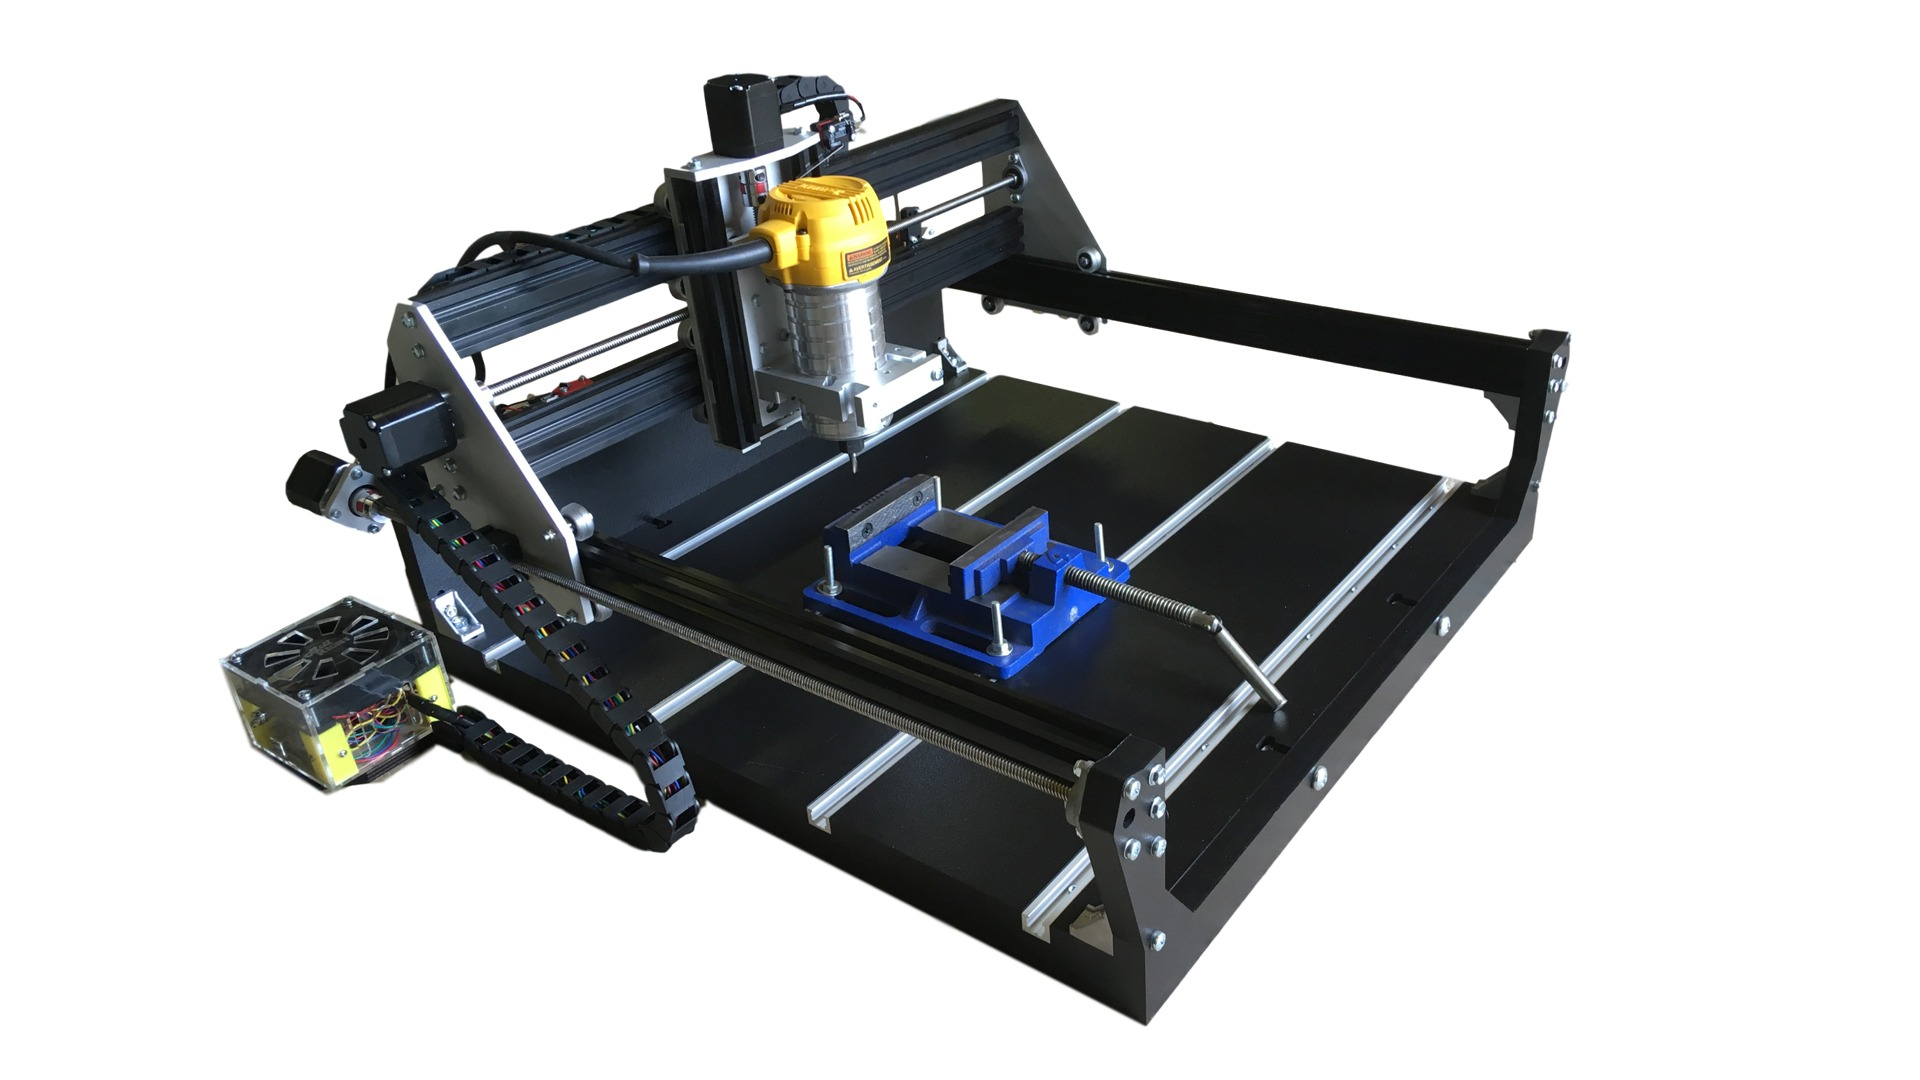 millright carve king desktop cnc